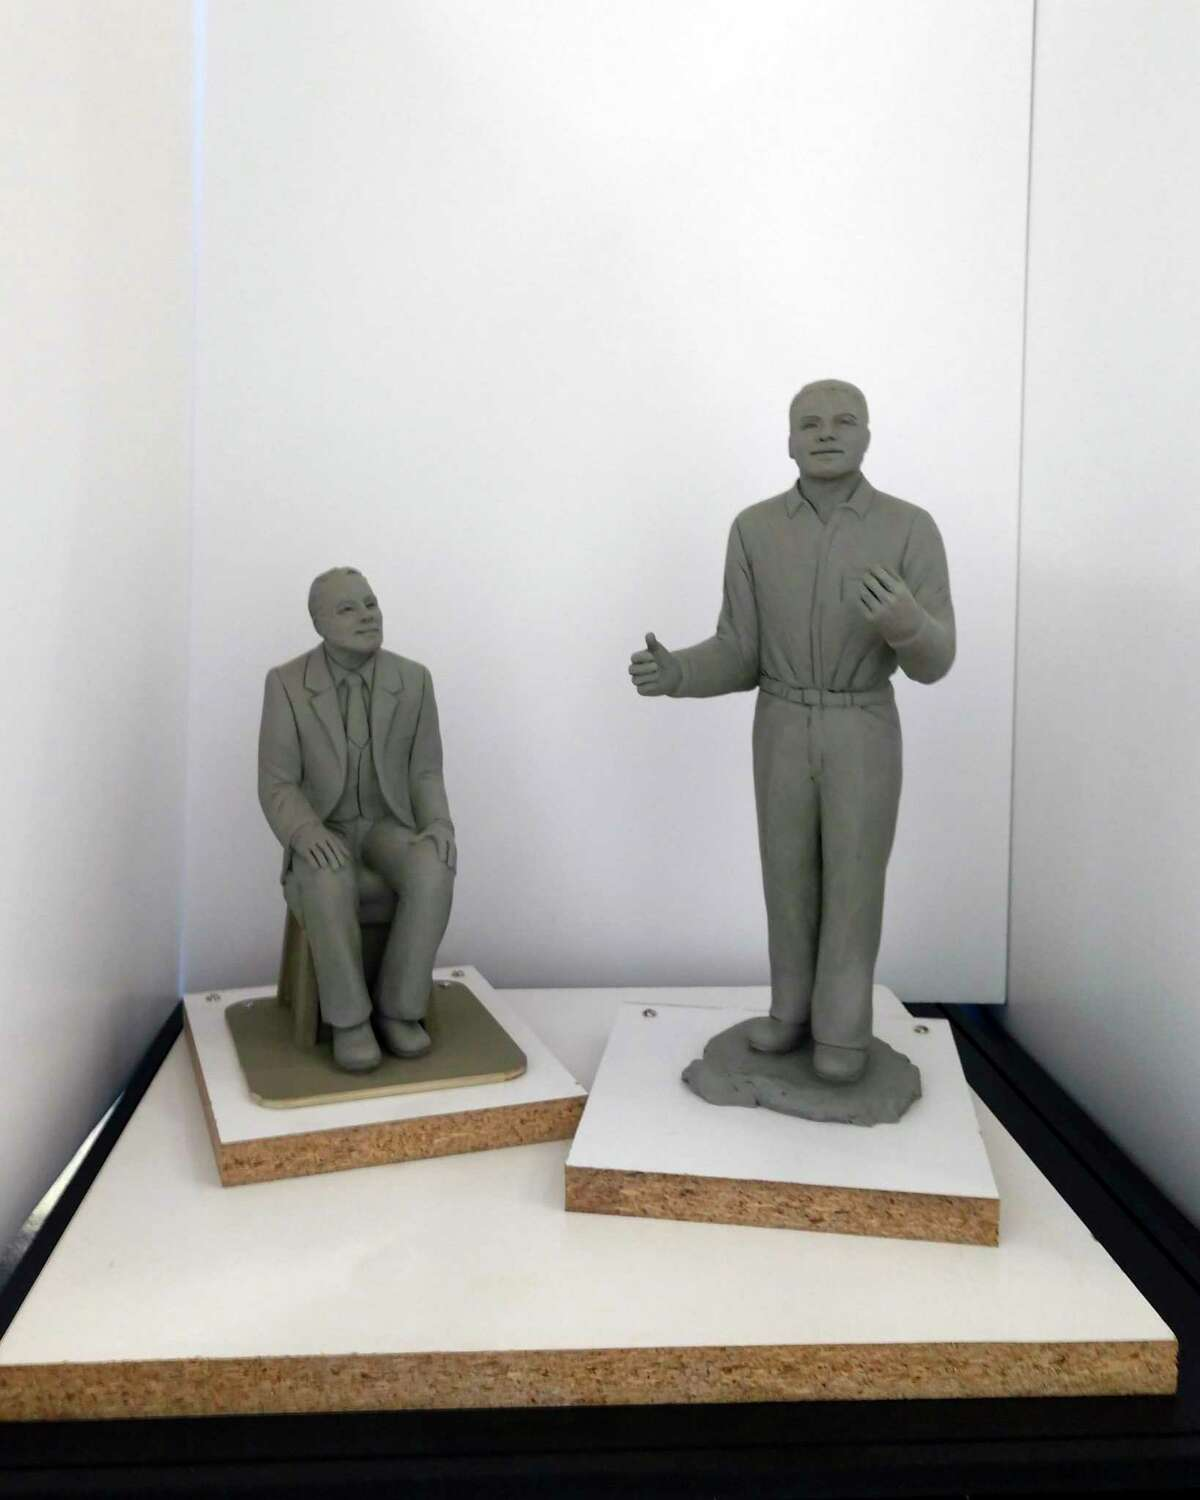 A minature sculptures of James Earl Jones and his mentor, Donald Crouch by artistBernadette Zachara-Marco is part of an exhibit at the Ramsdell Regional Center for the Arts.Zachara-Marco has been commissioned to createfull-size bronze sculptures to be installed in the Brethren area.(Courtesy Photo)